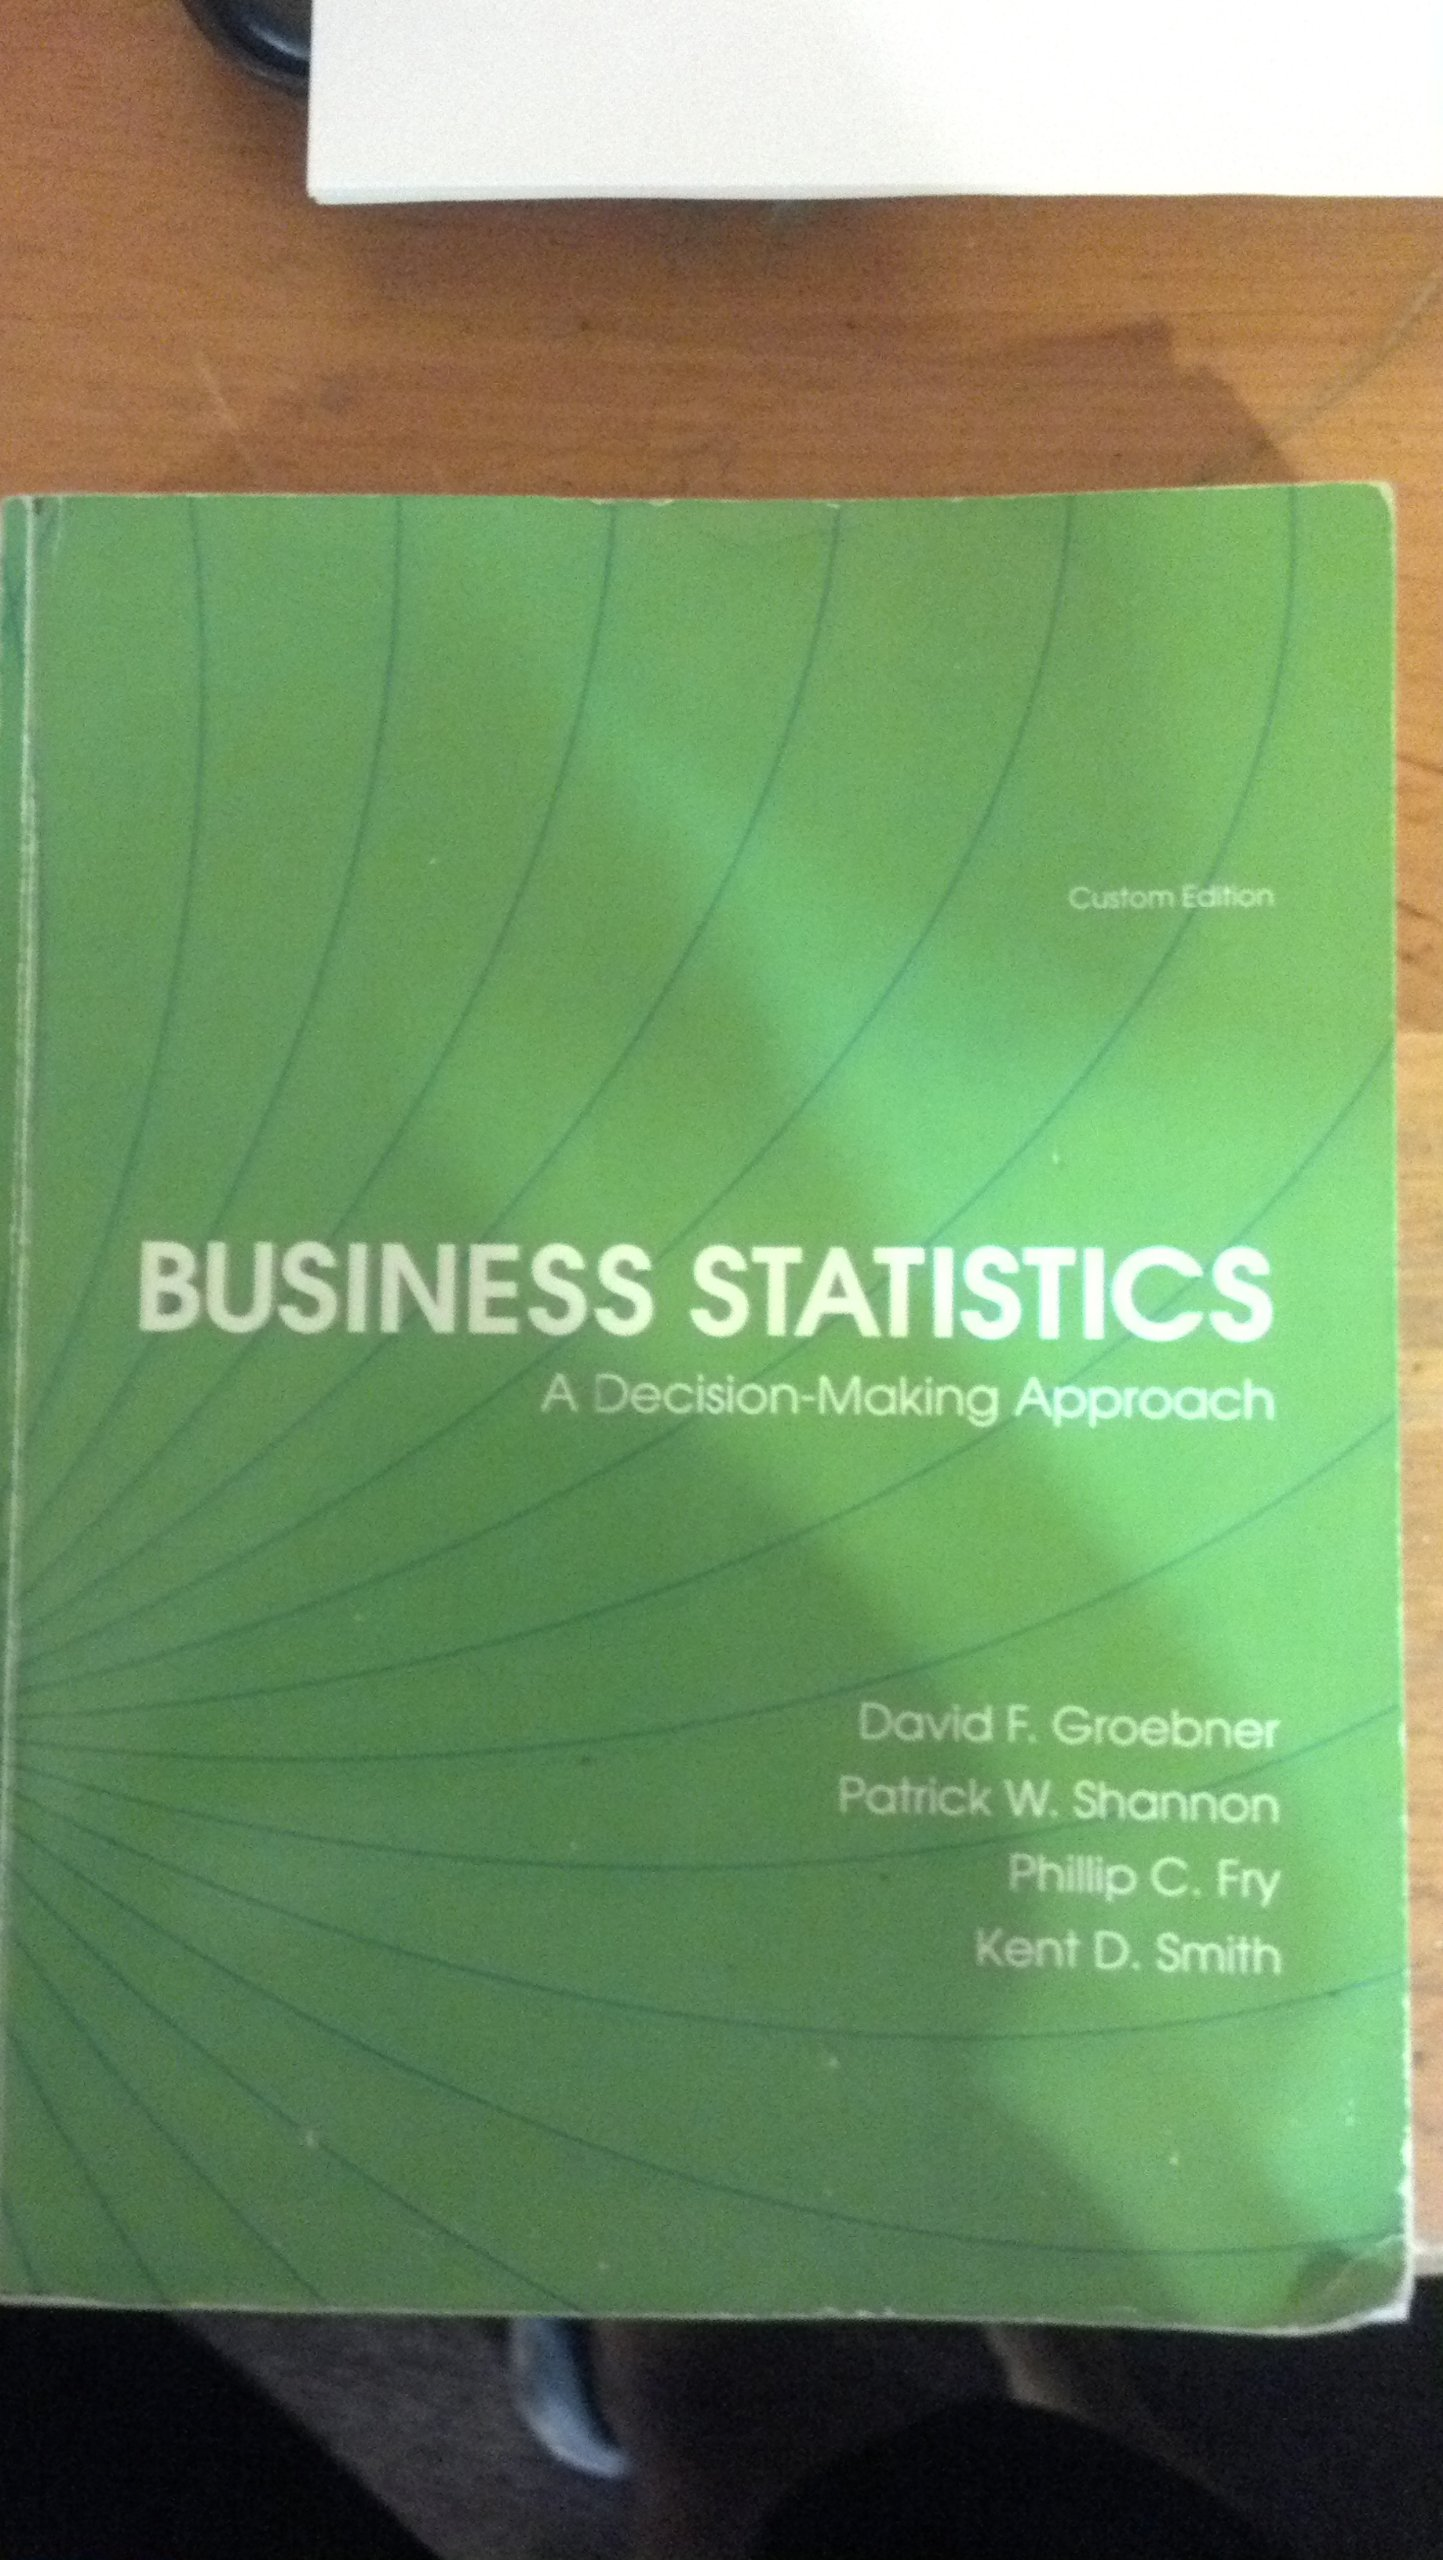 Business statistics a decision making approach bus304 david f business statistics a decision making approach bus304 david f groebner patrick w shannon phillip c fry kent d smith 9781256277507 amazon fandeluxe Image collections